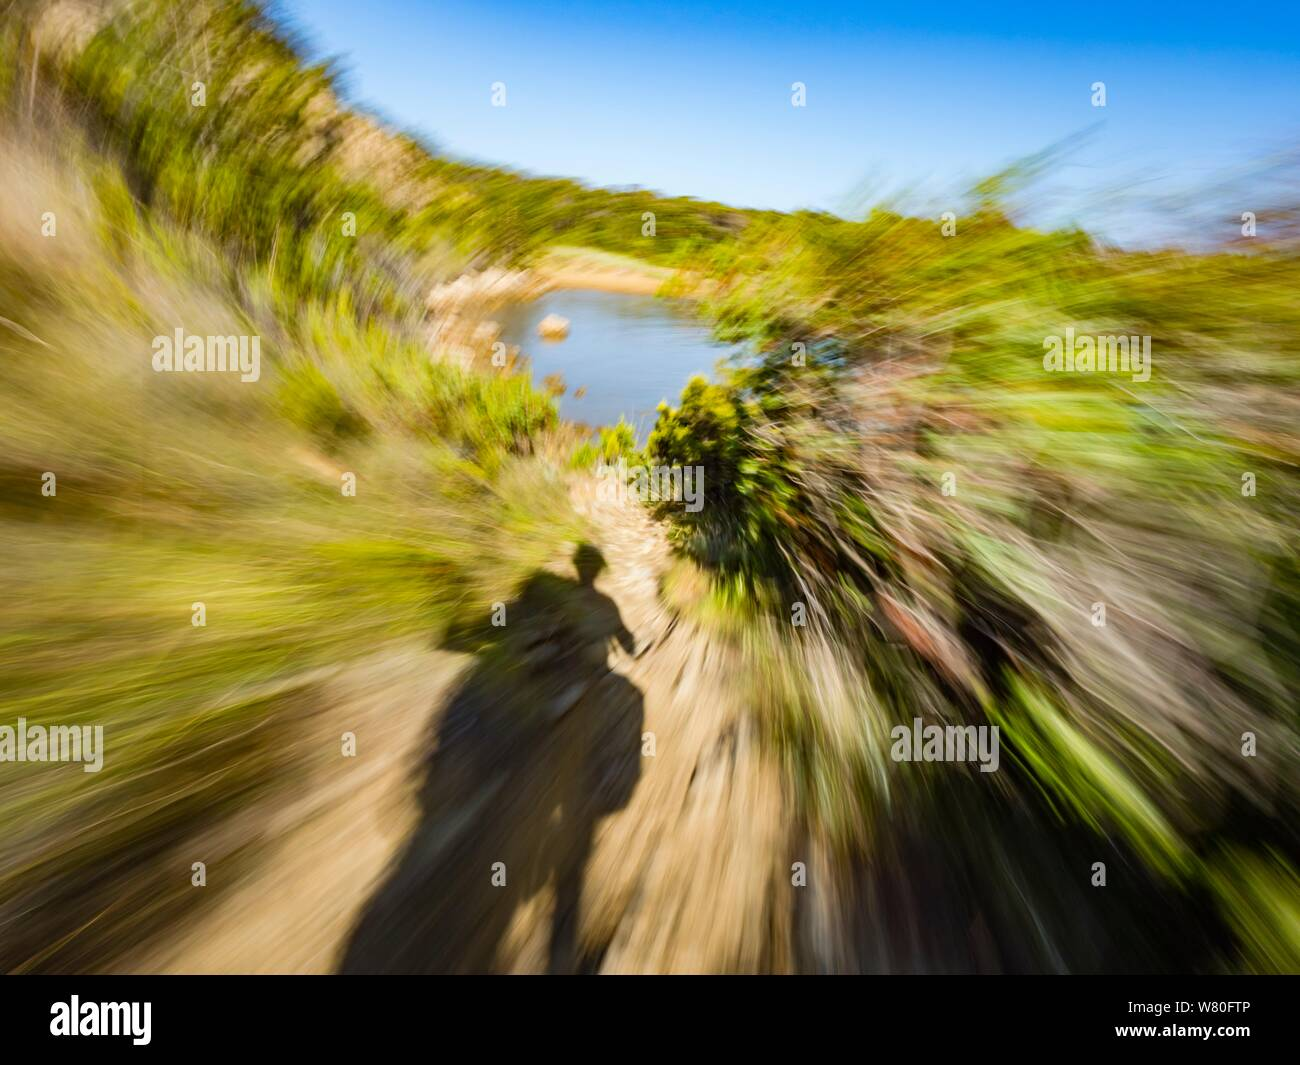 Rough terrain vacated vacant countryside speeding low view along Green tree bushes branches foliage circular twirl motion aka driving motorcycle Stock Photo